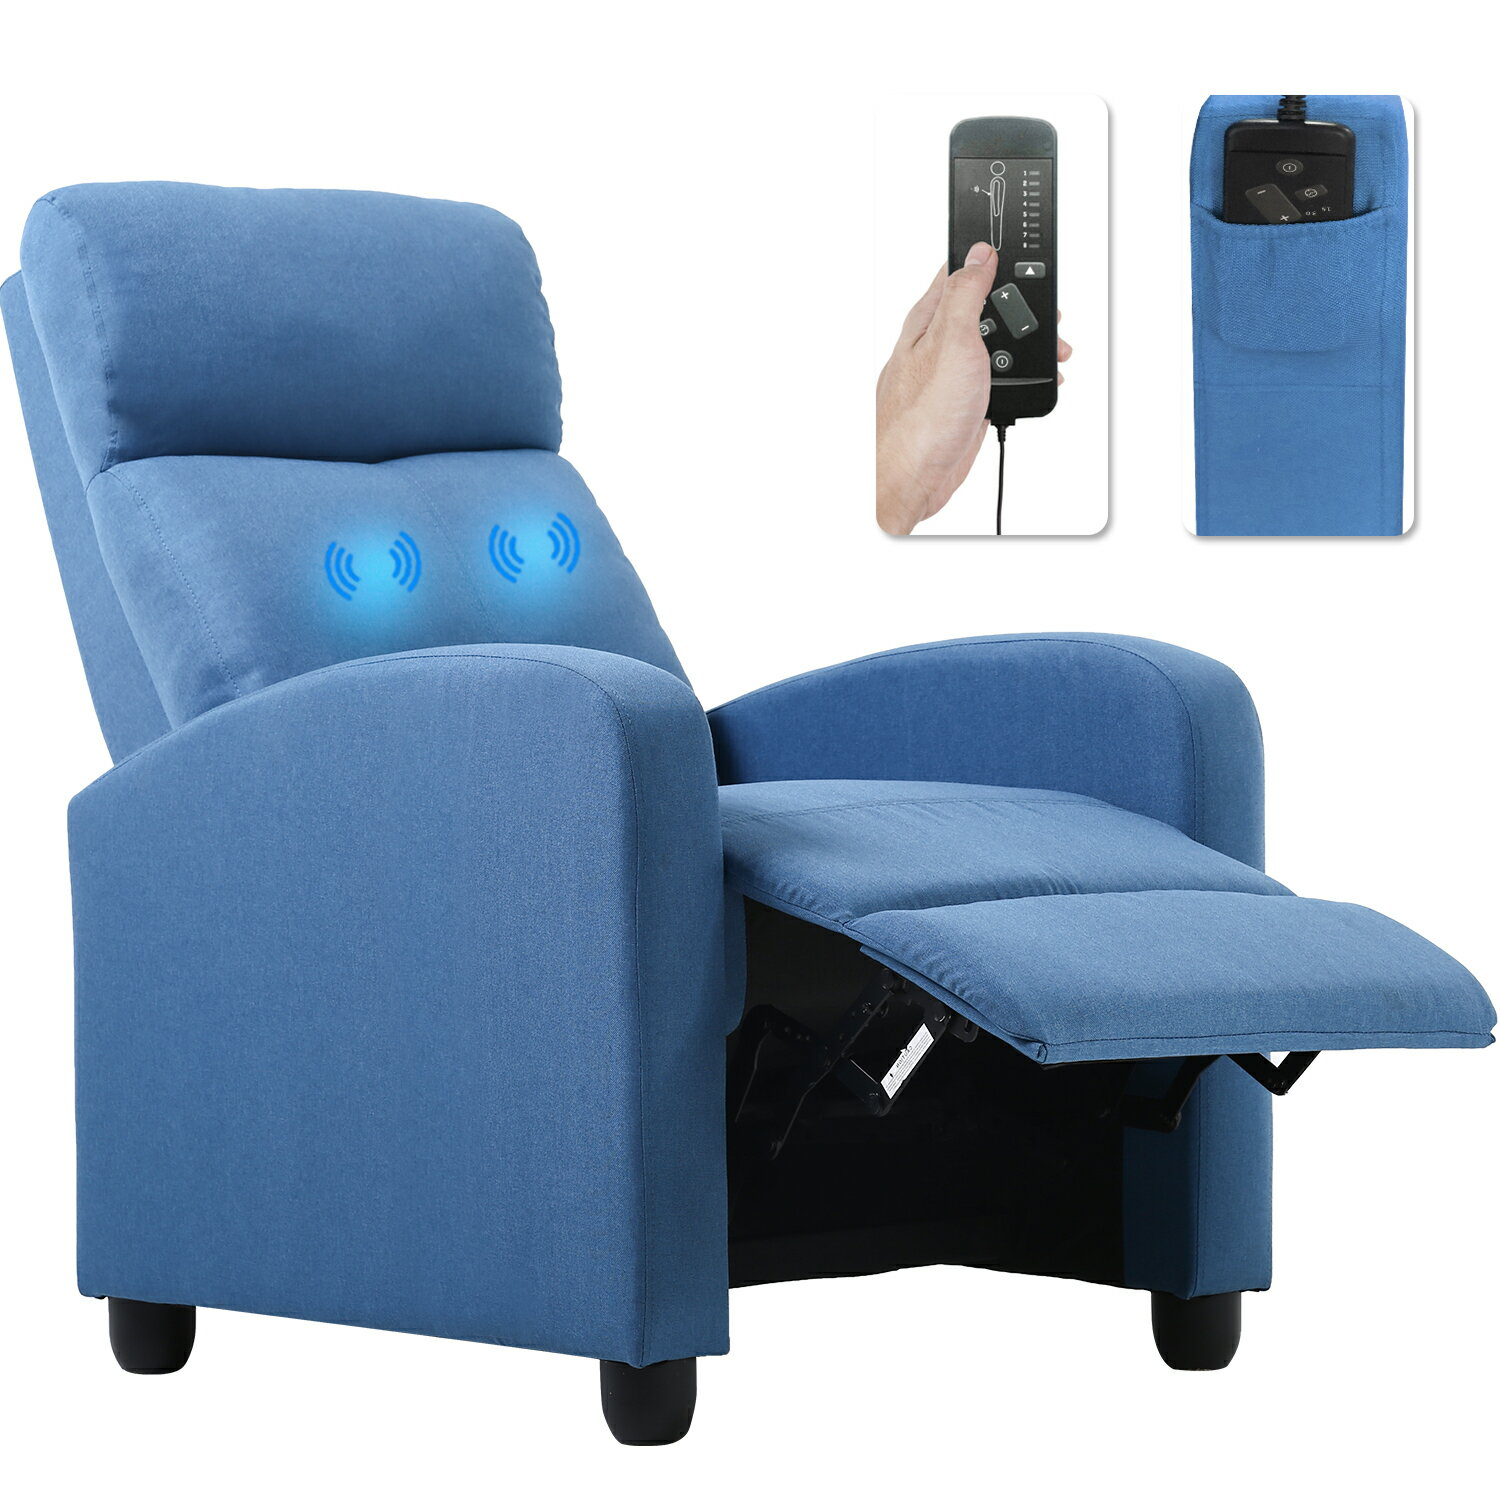 Awesome Recliner Chair For Living Room Winback Home Theater Seating Single Sofa Massage Recliner Sofa Reading Chairmodern Reclining Chair Easy Lounge With Dailytribune Chair Design For Home Dailytribuneorg